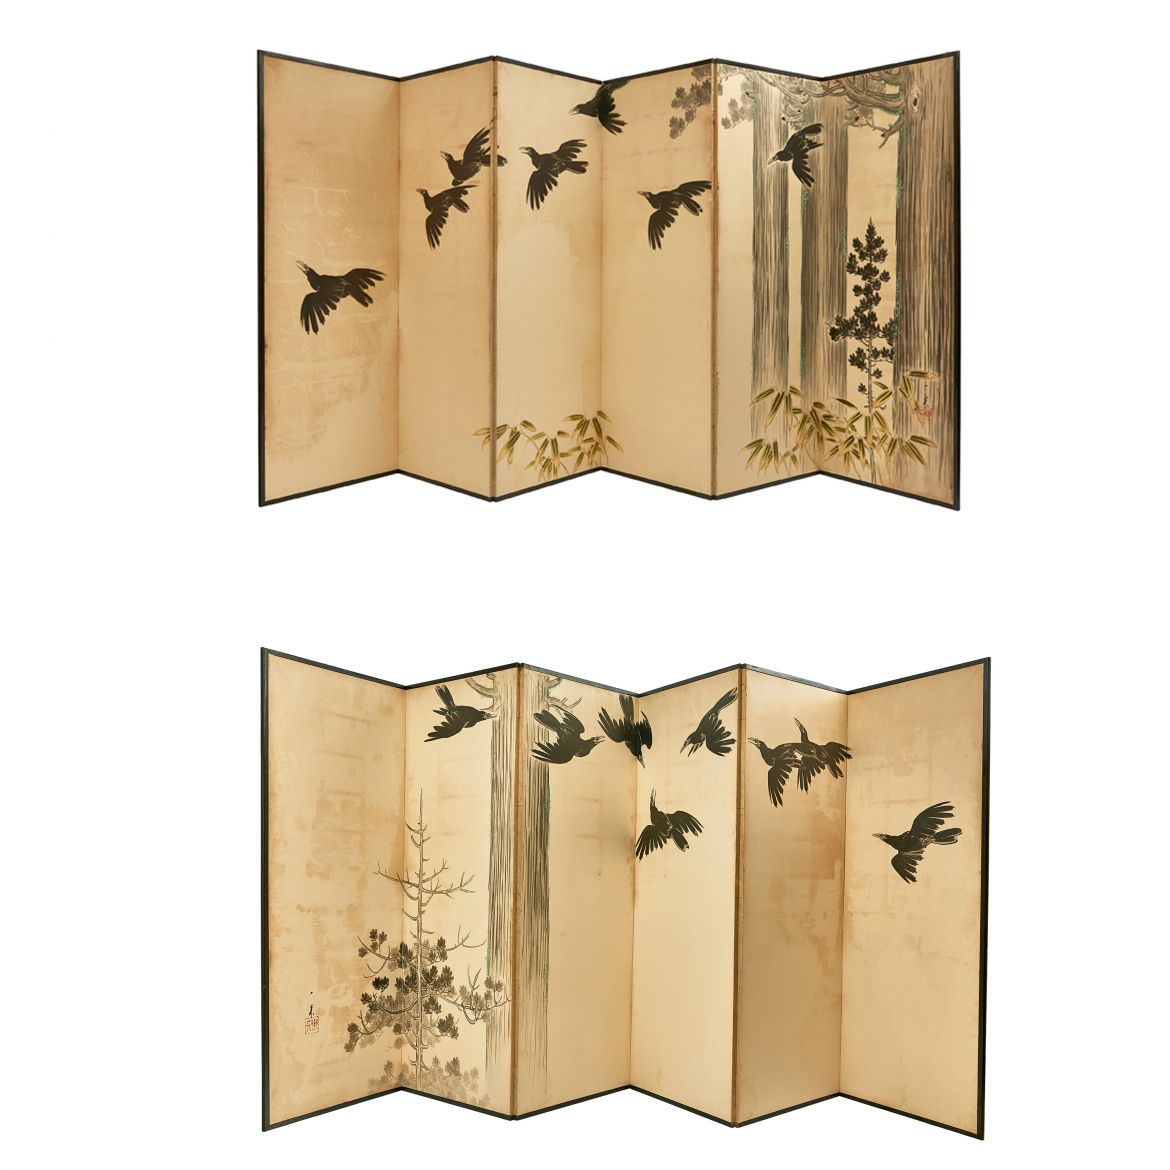 Japanese Screens With Flying Crows